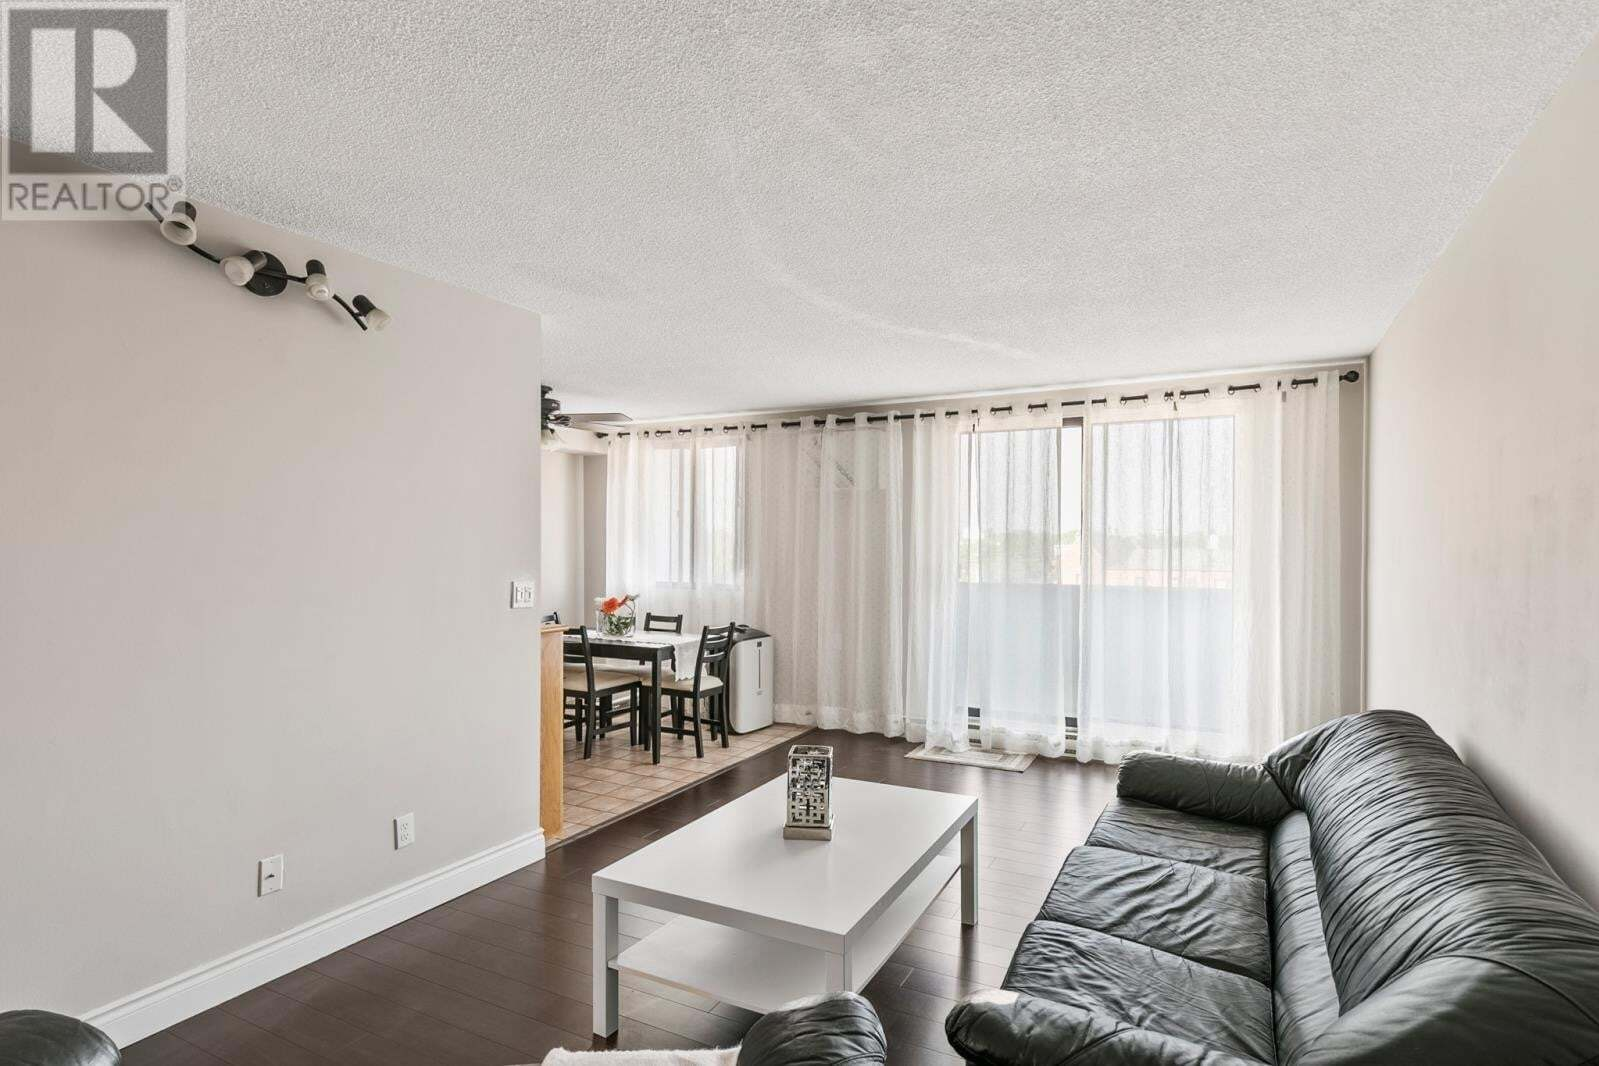 Condo for sale at 150 Park St West Unit 613 Windsor Ontario - MLS: 20006227